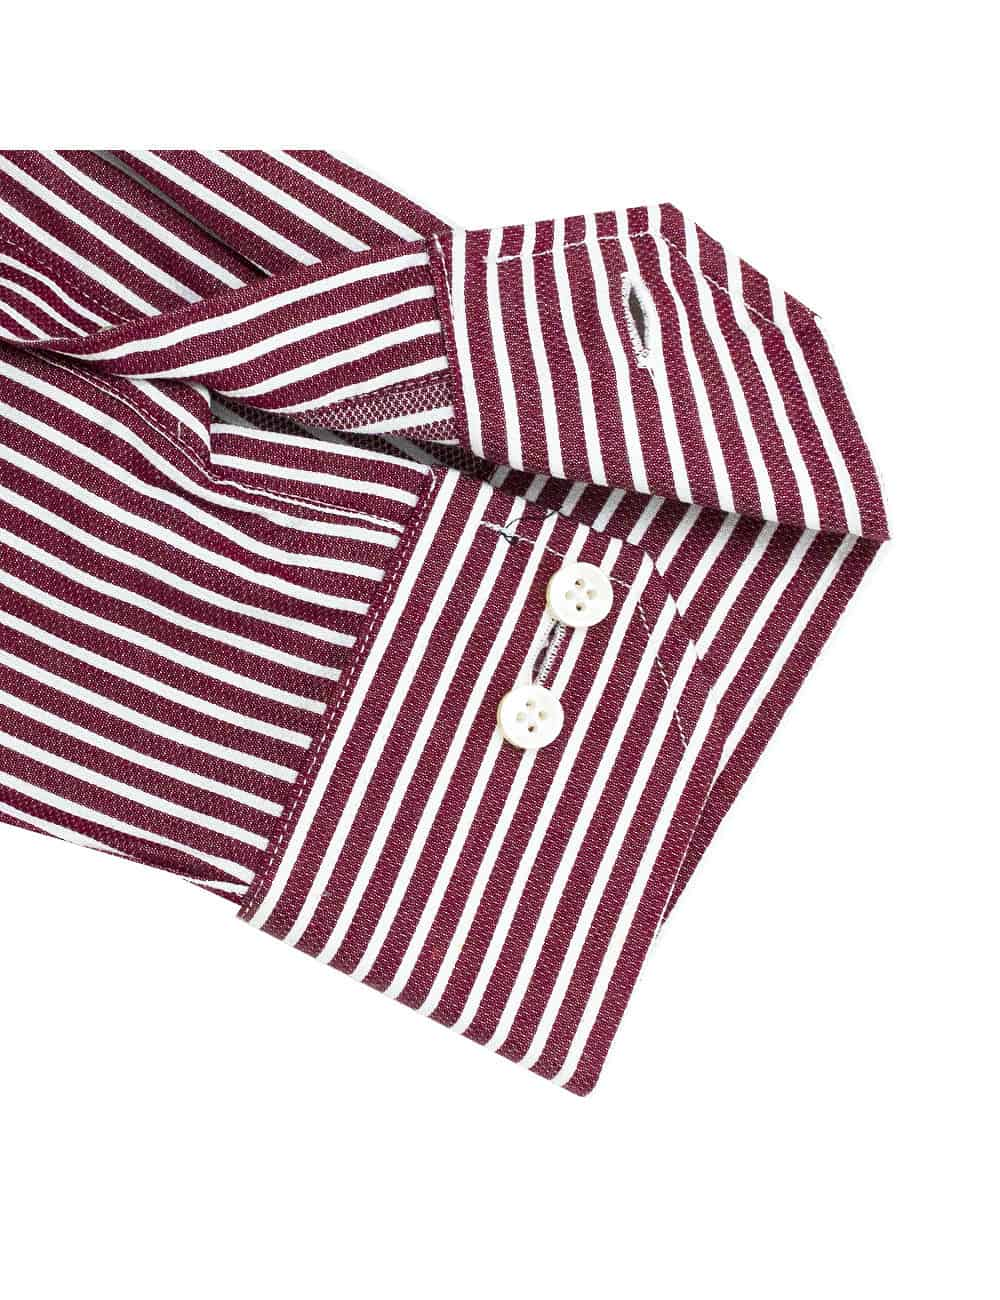 CF Red with White Stripes 100% Premium Cotton Long Sleeve Single Cuff Shirt CF2A18.5